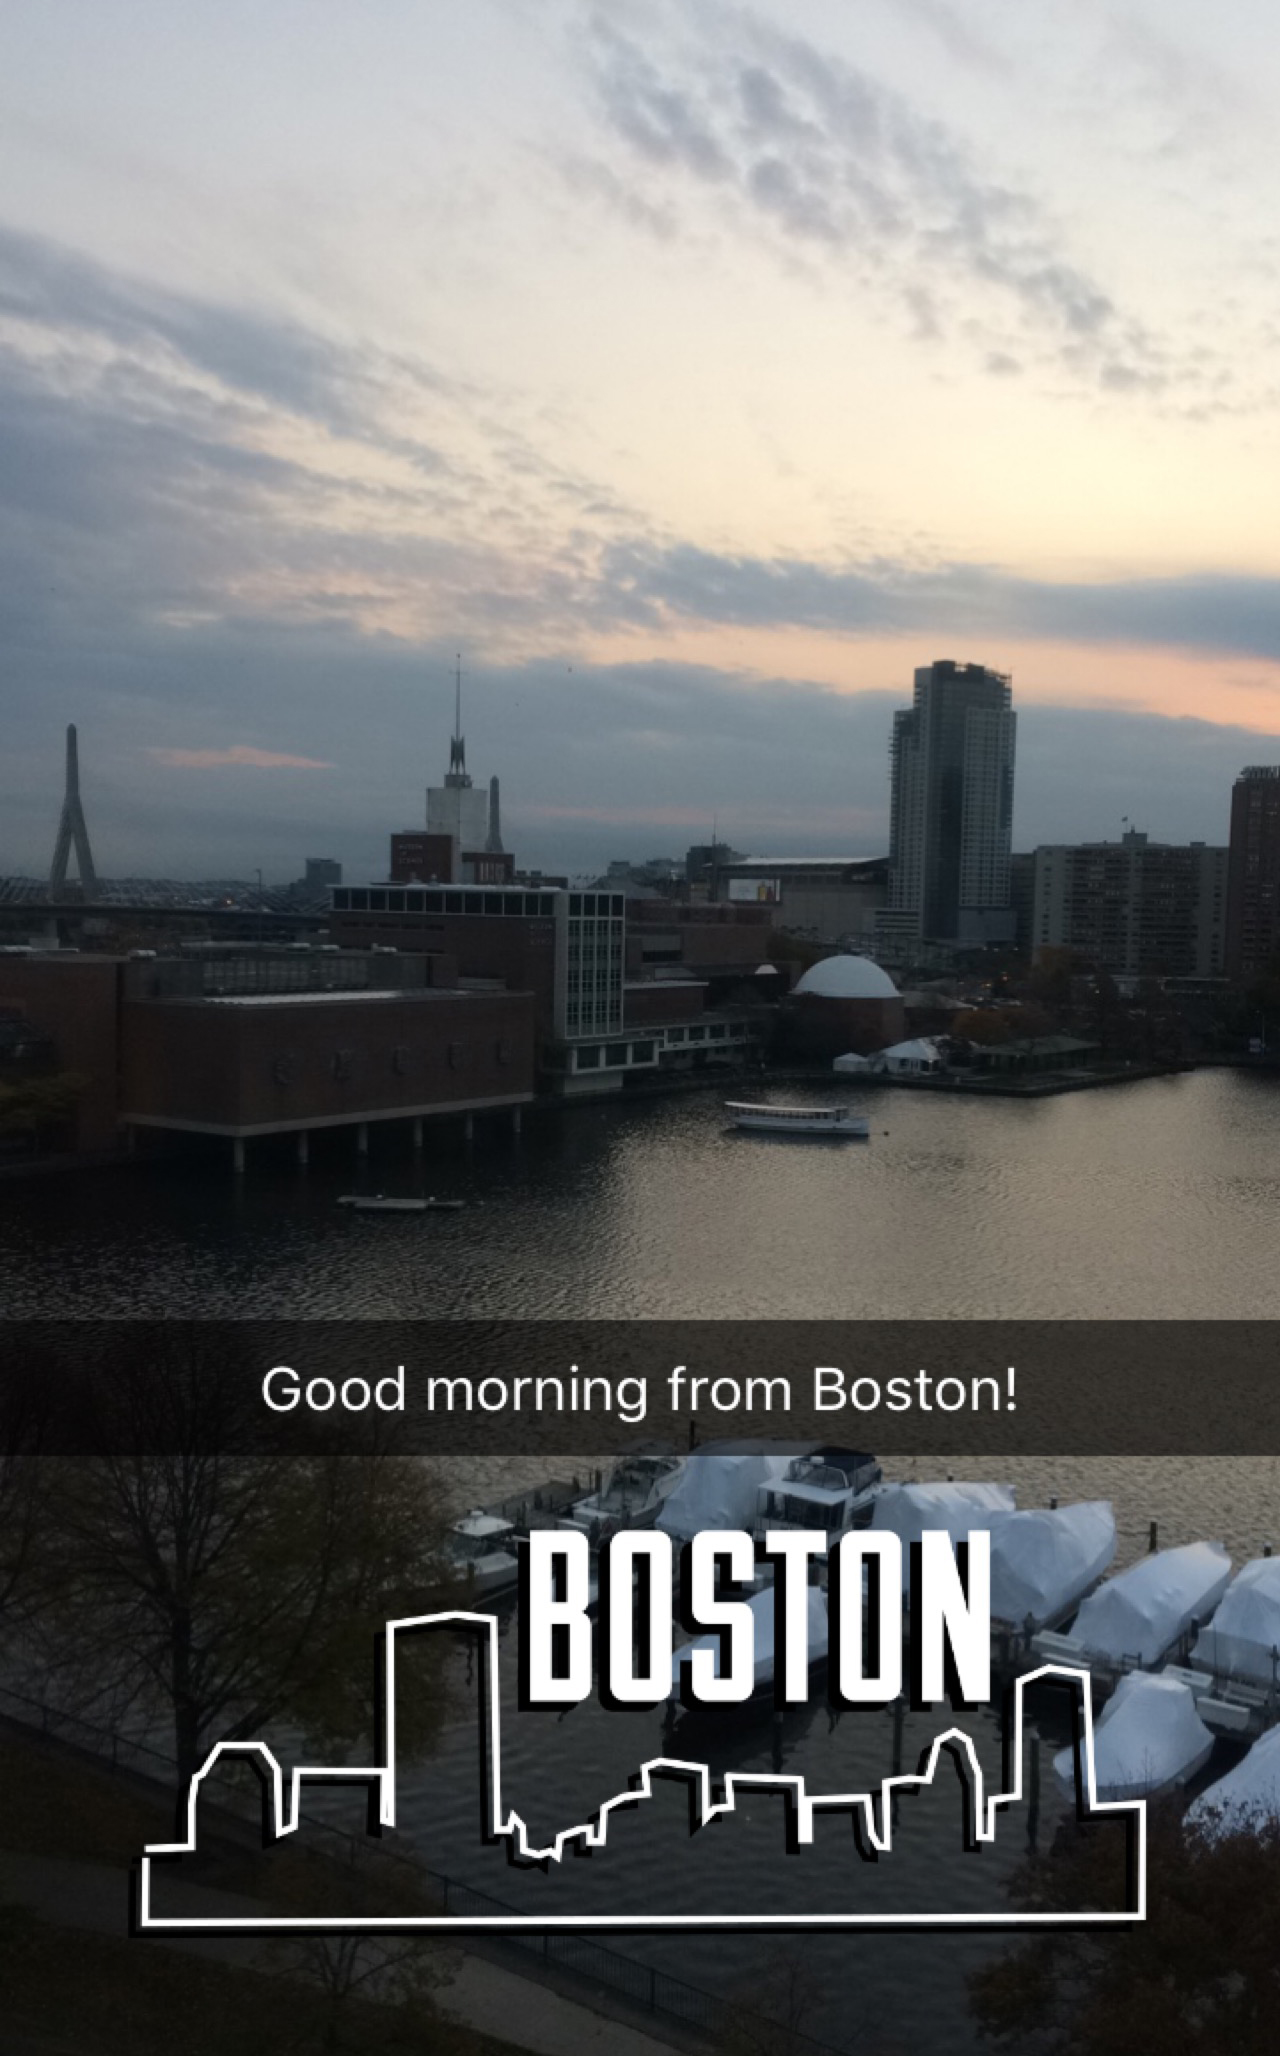 I am in Boston for the Higher Education Social Media Strategies Summit. I had to include the Snapchat geofilter.